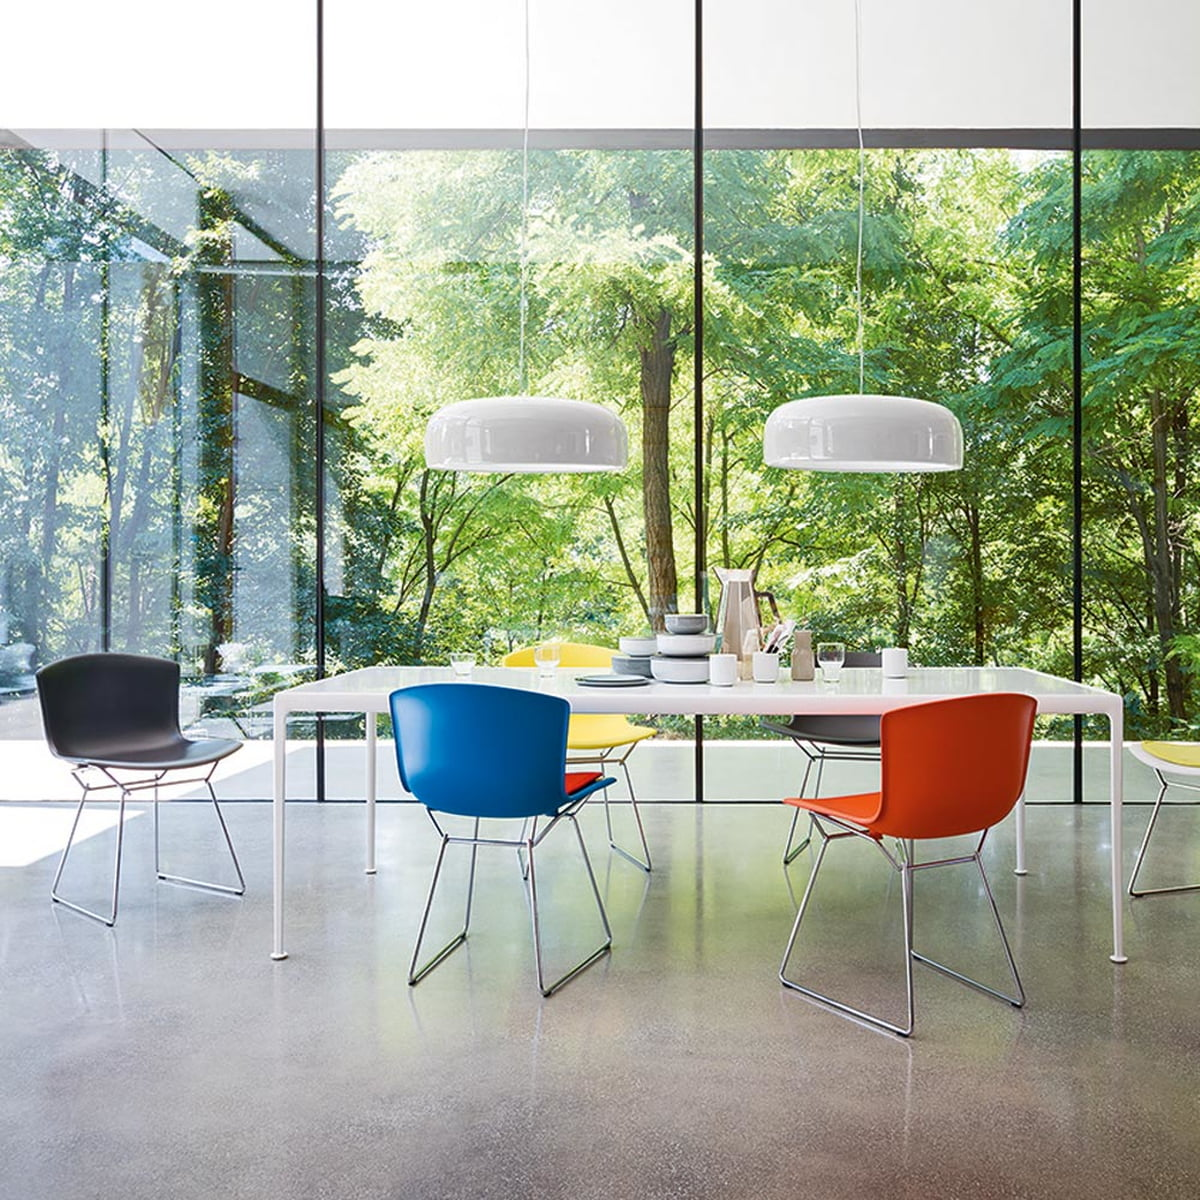 Obegi Home Furniture Knoll Bertoia Plastic Chairs Ambiente